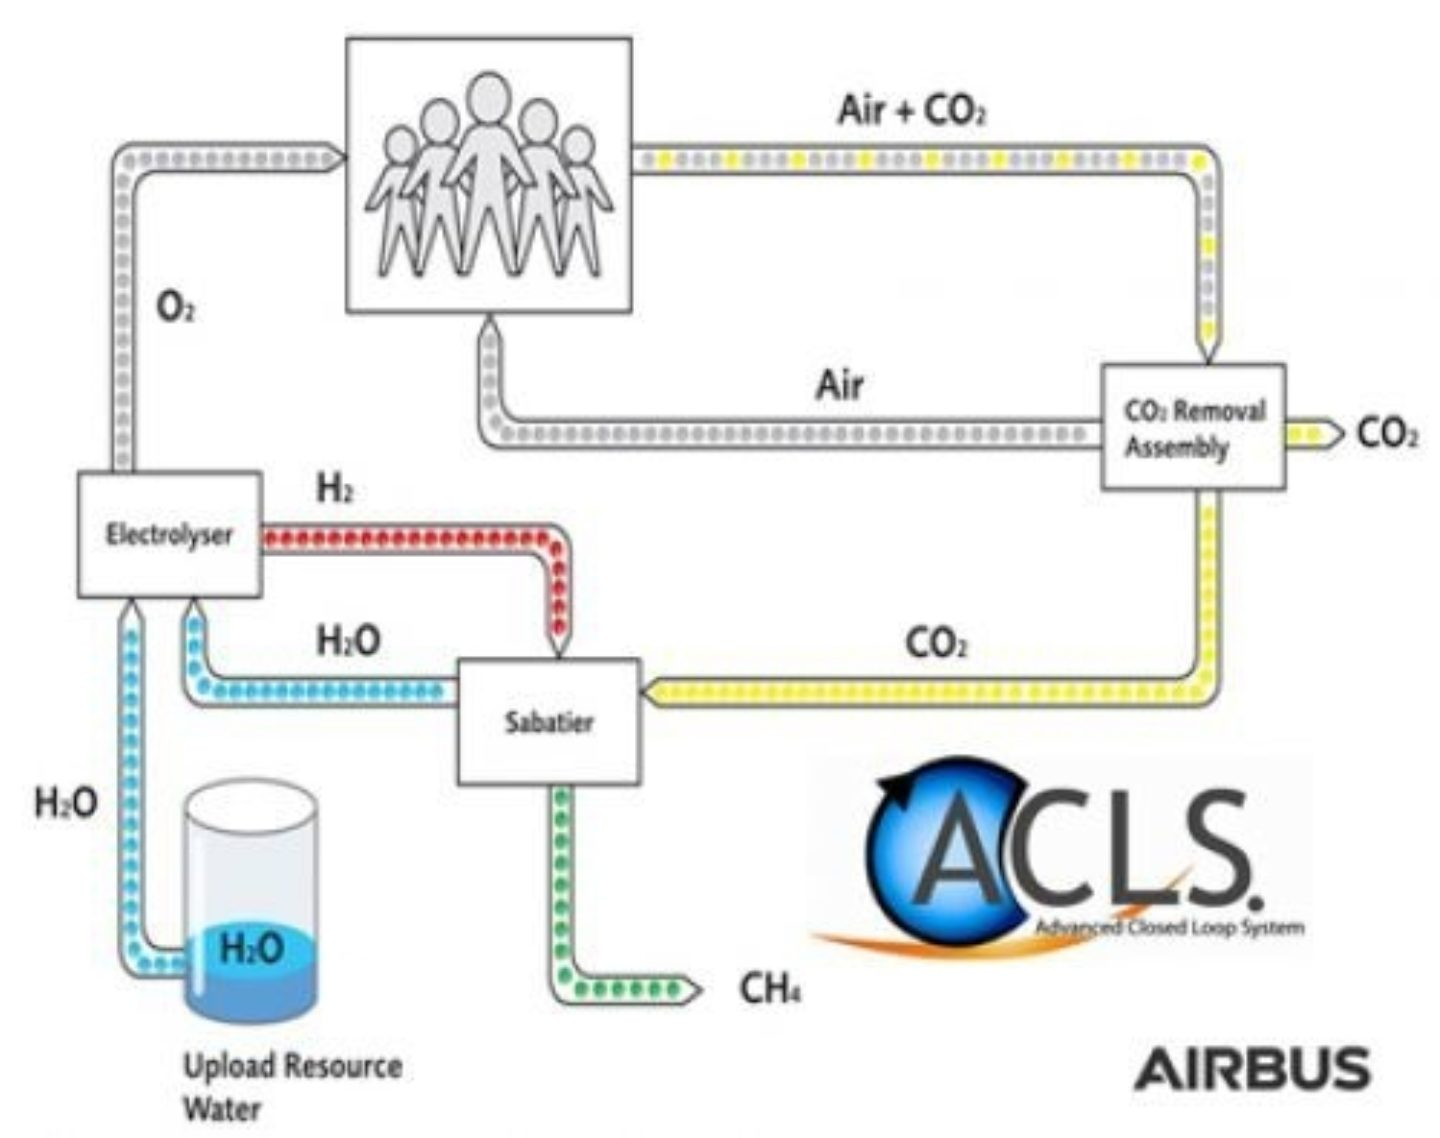 Diagram explaining how the ACLS works